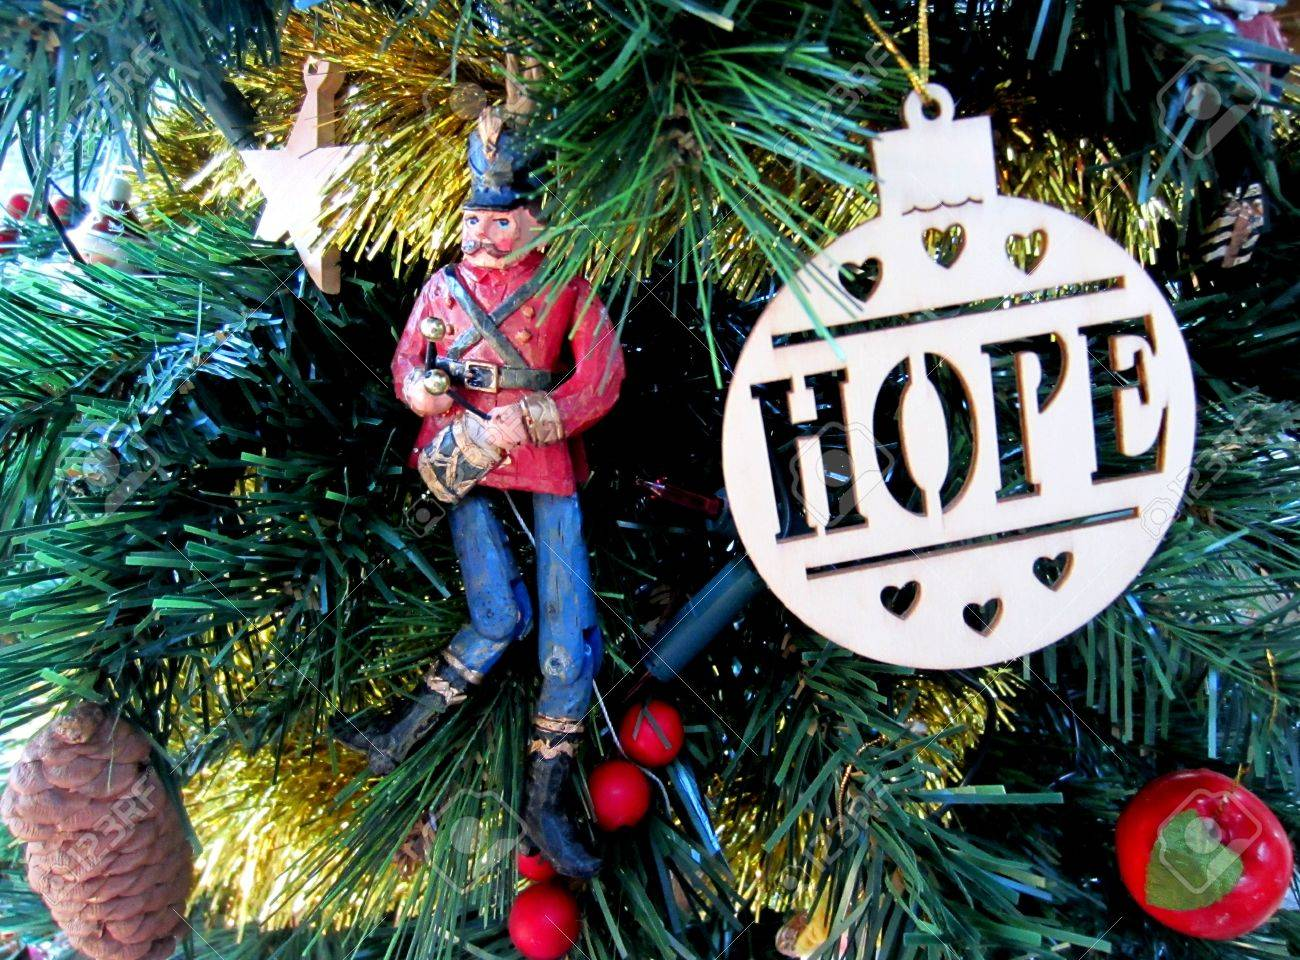 hope and toy soldier christmas tree decorations stock photo 24869474